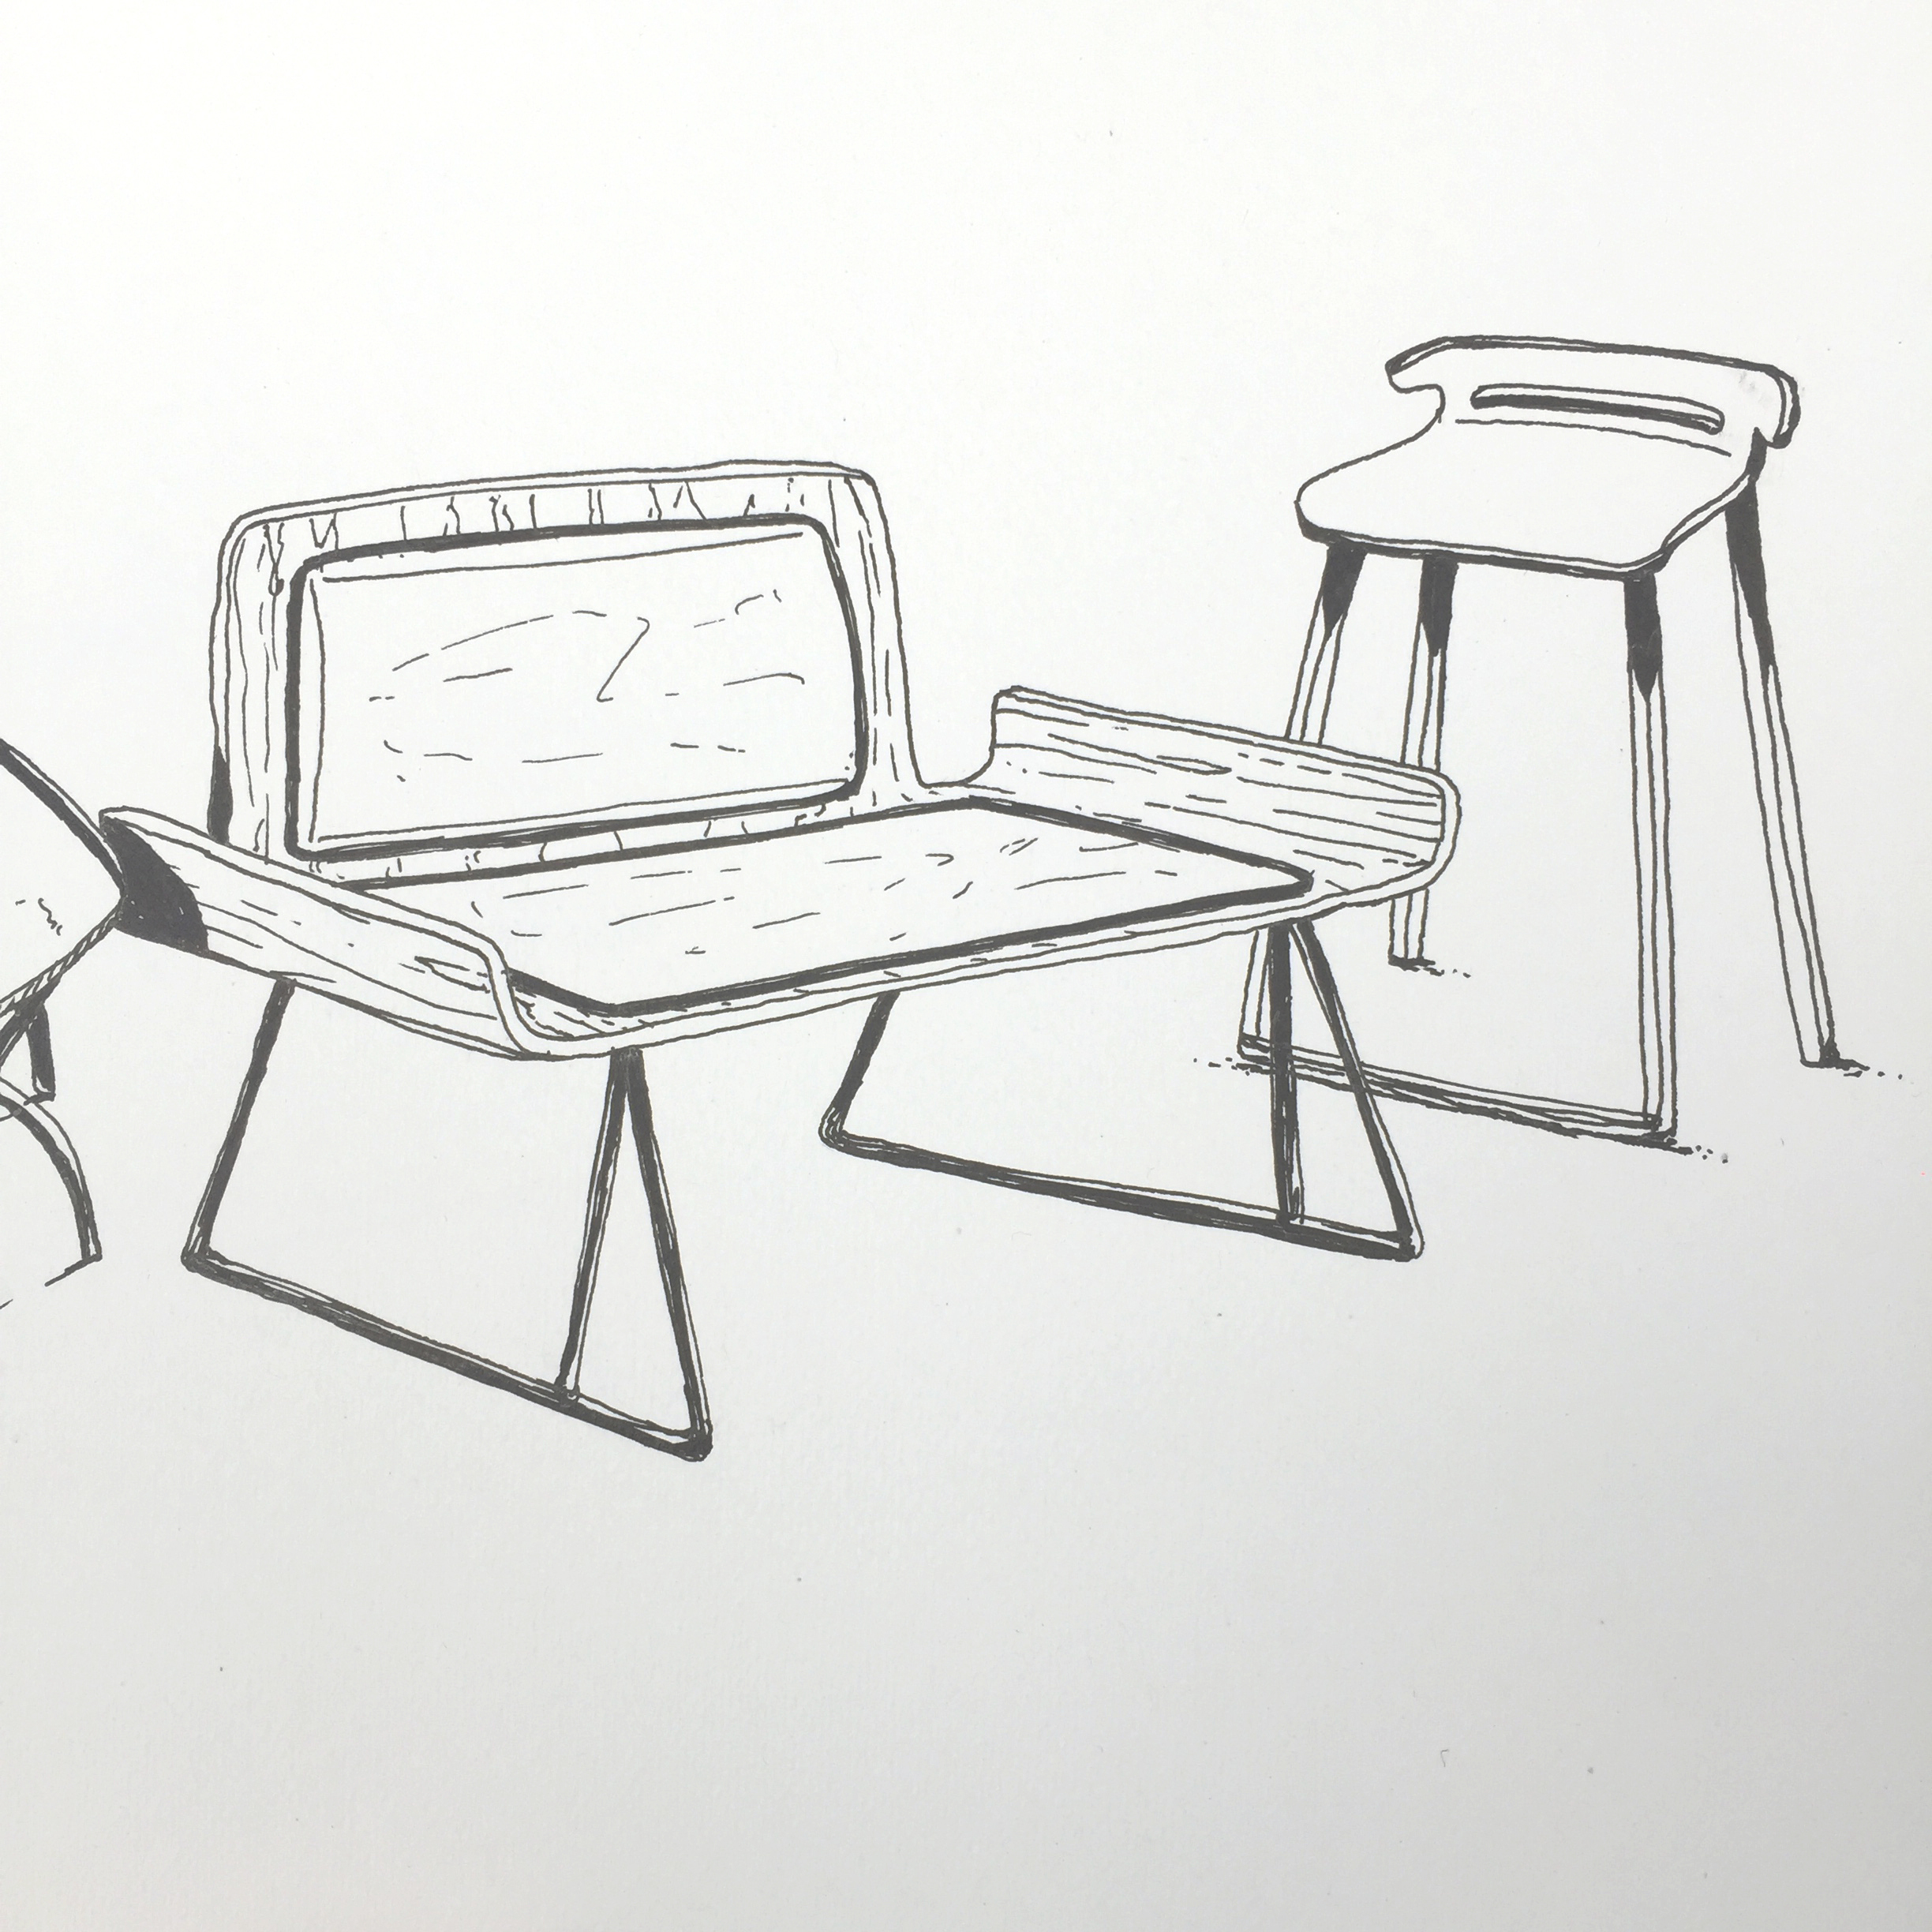 Chairs and stools doodle by Sebastian Galo